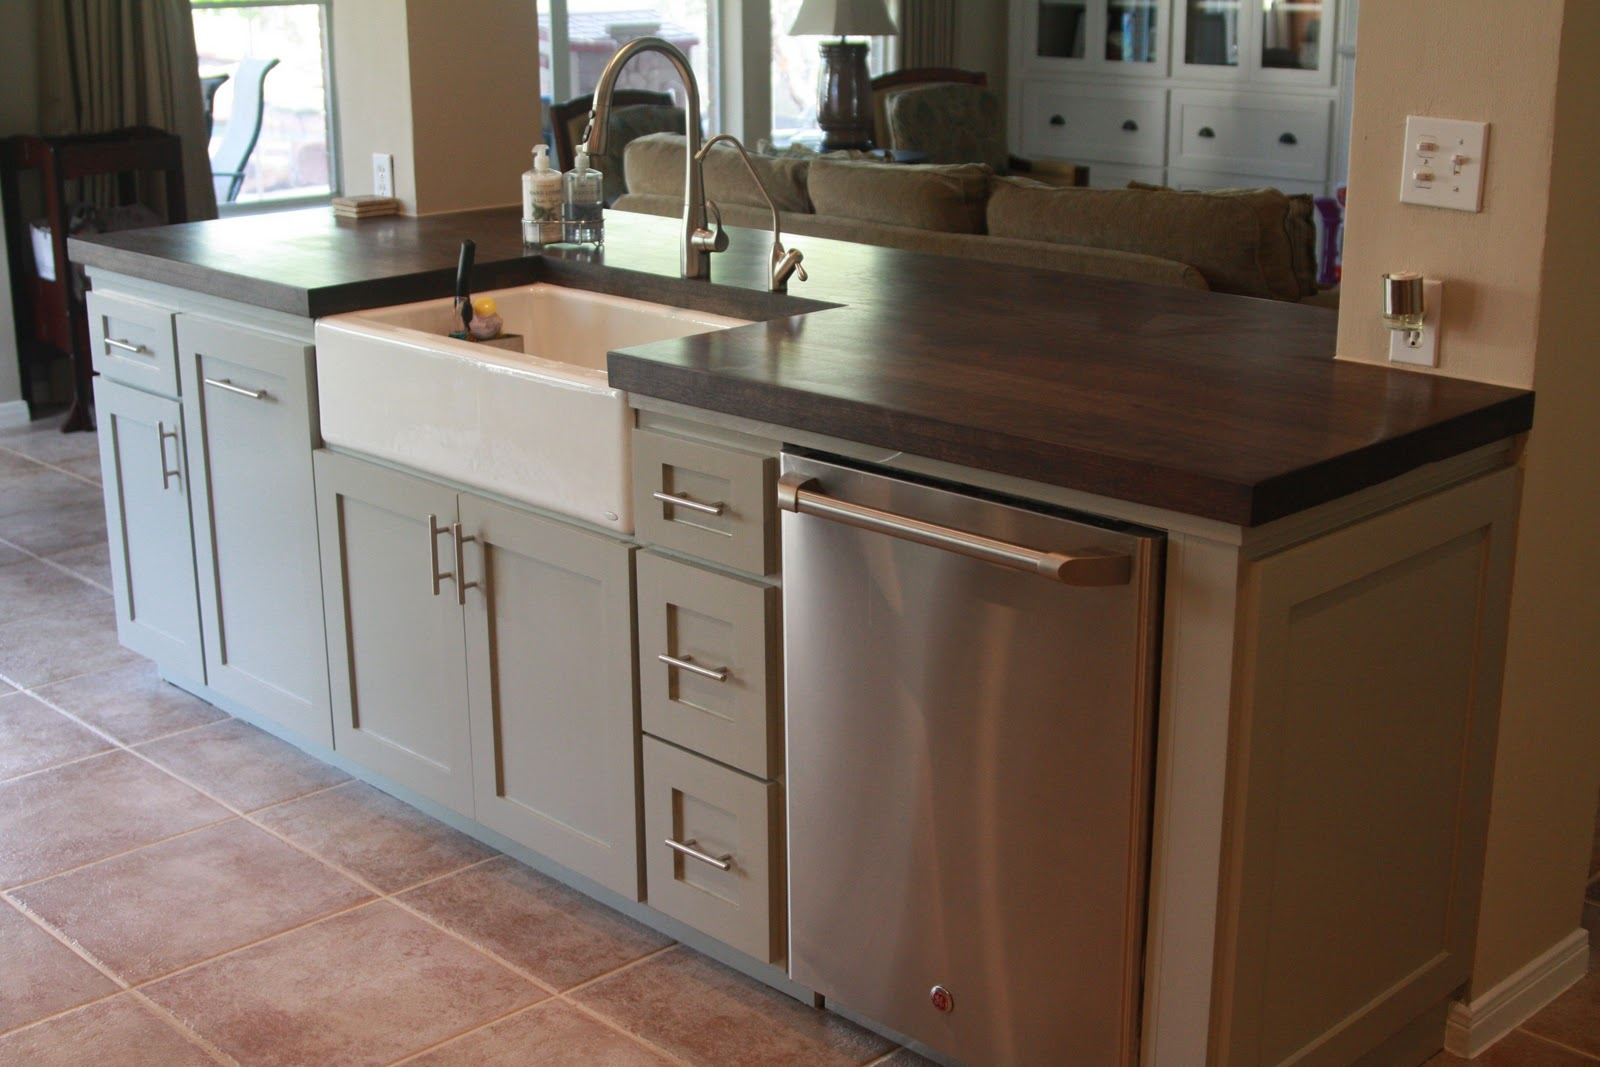 ... the sink an... Kitchen Island Ideas With Sink